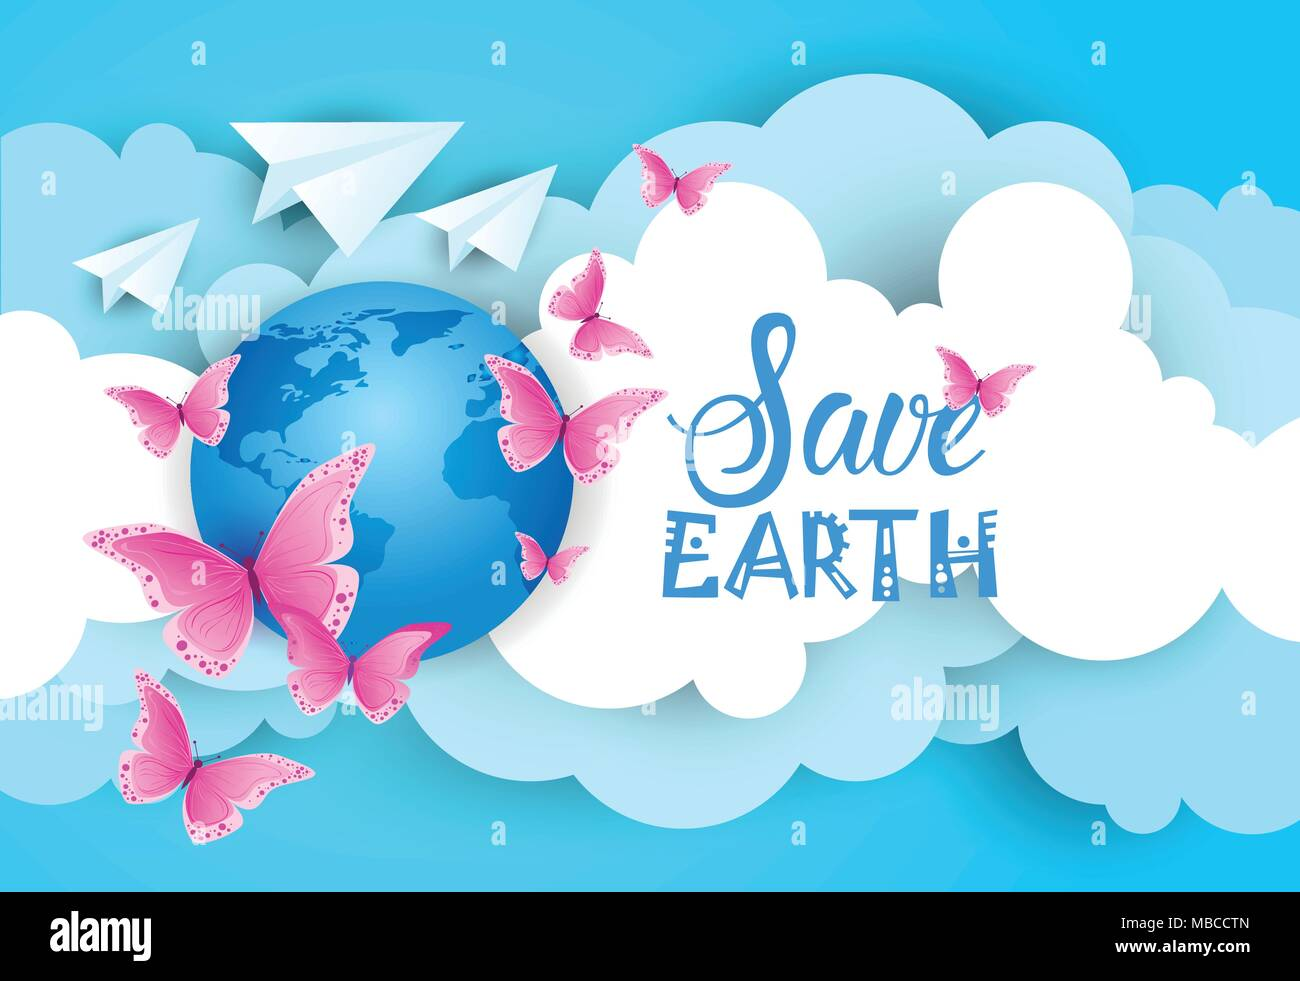 Save Earth Poster High Resolution Stock Photography And Images Alamy